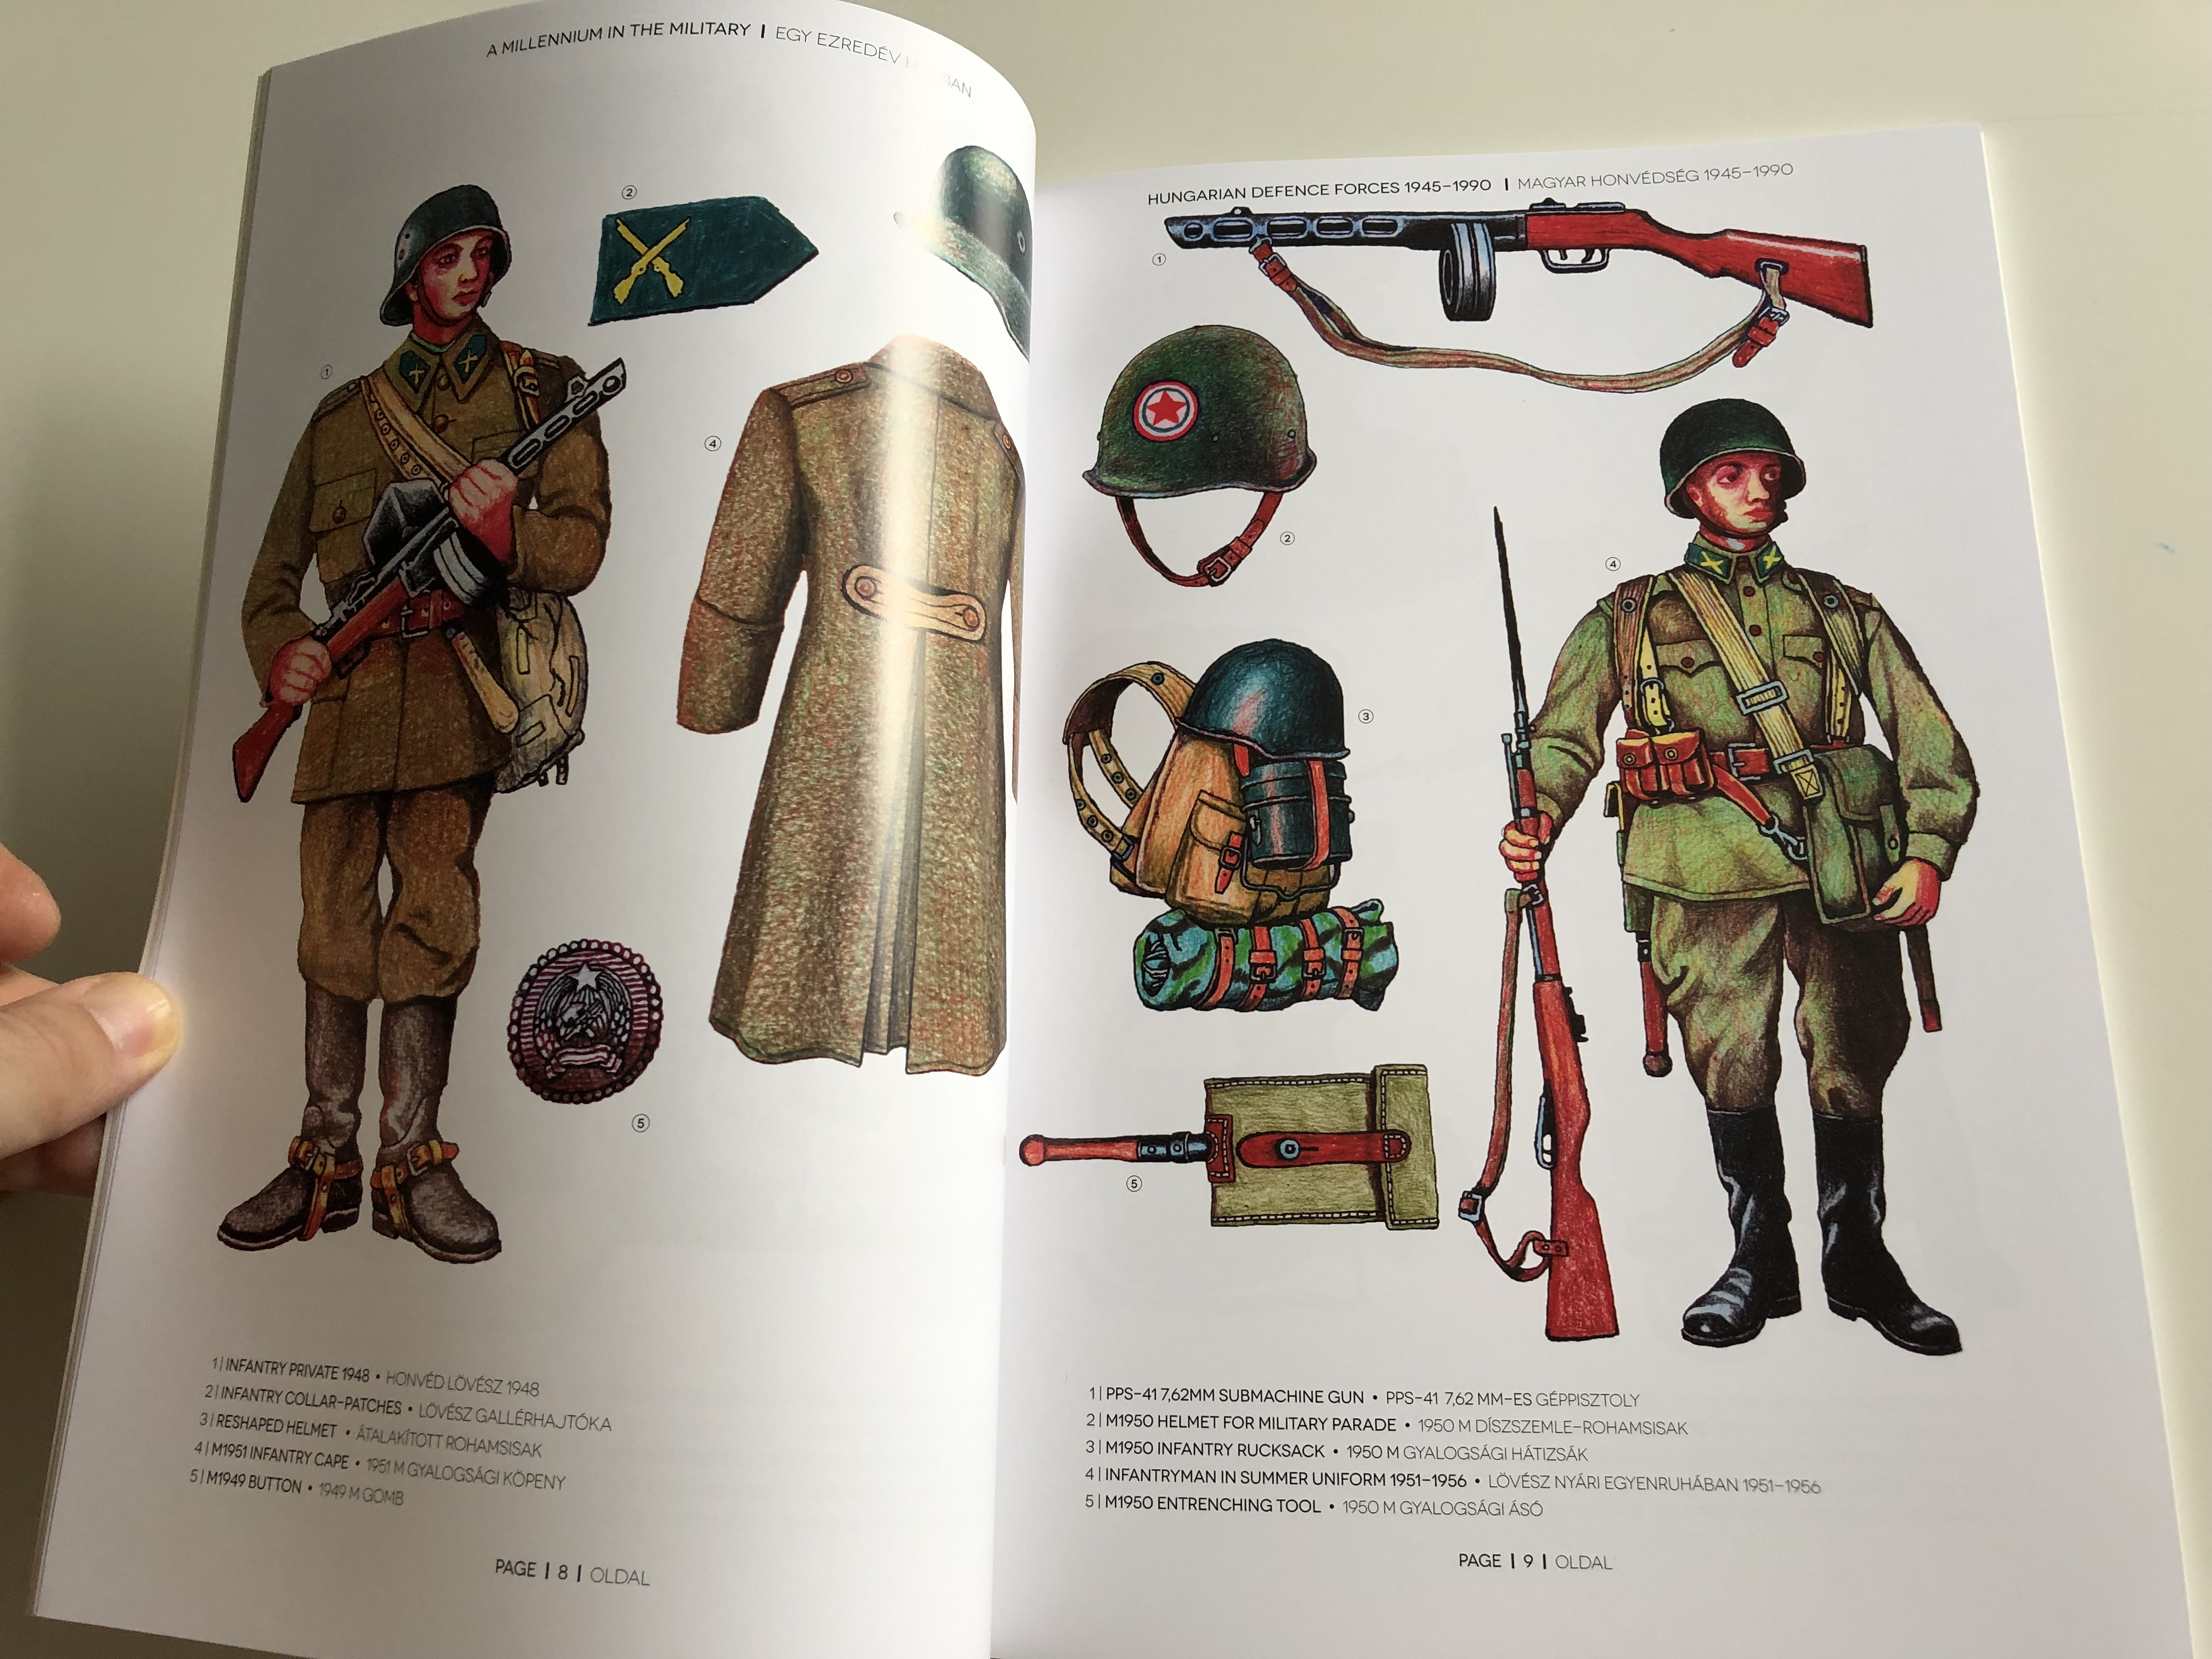 hungarian-defence-forces-1945-1990-by-gy-z-somogyi-magyar-honv-ds-g-1945-1990-a-millennium-in-the-military-egy-ezred-v-hadban-paperback-2019-hm-zr-nyi-5-.jpg